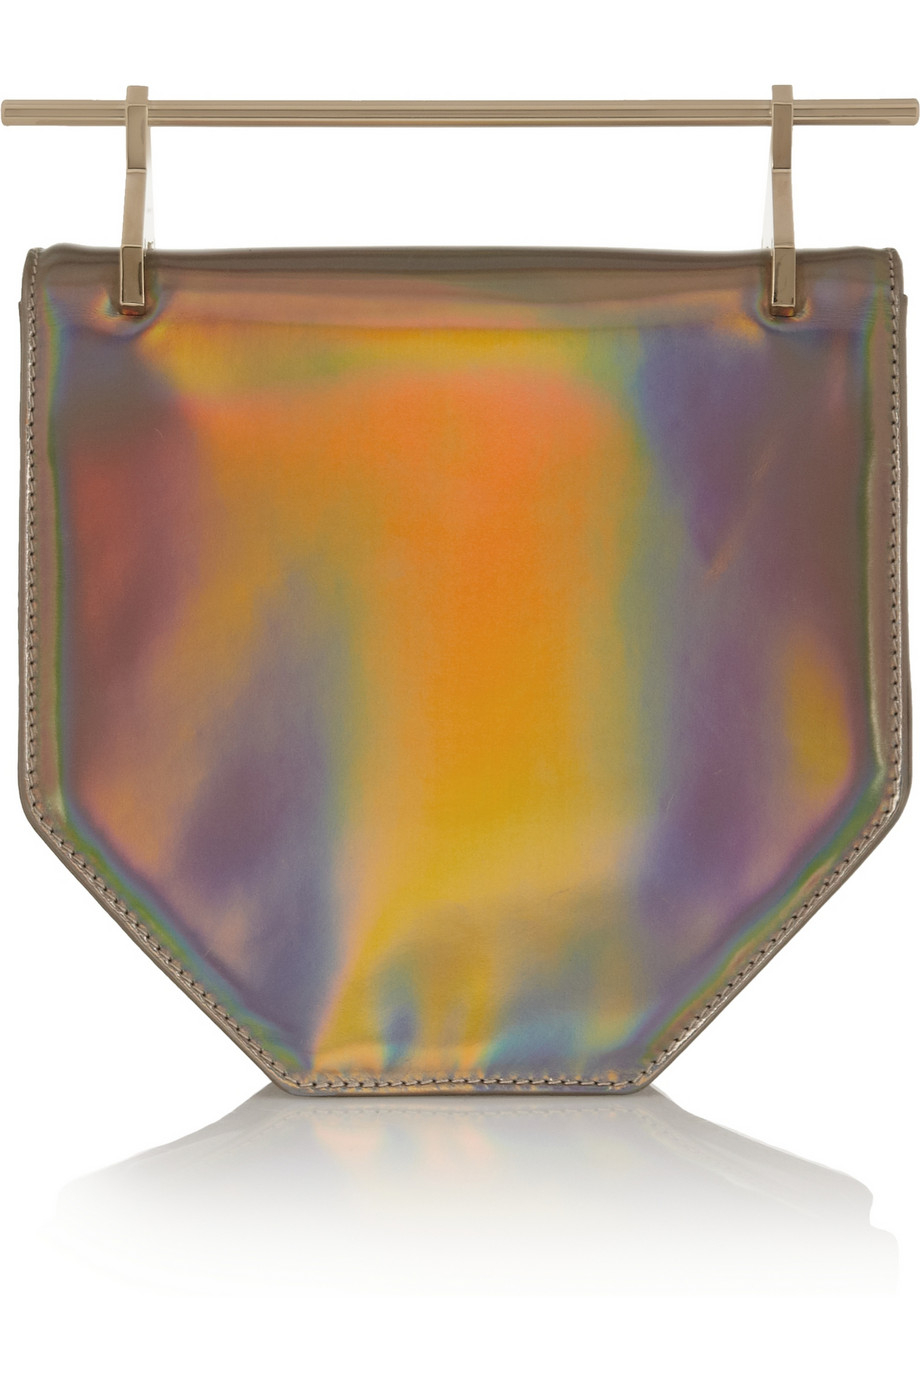 M2malletier Amor Fati Holographic Leather Clutch In